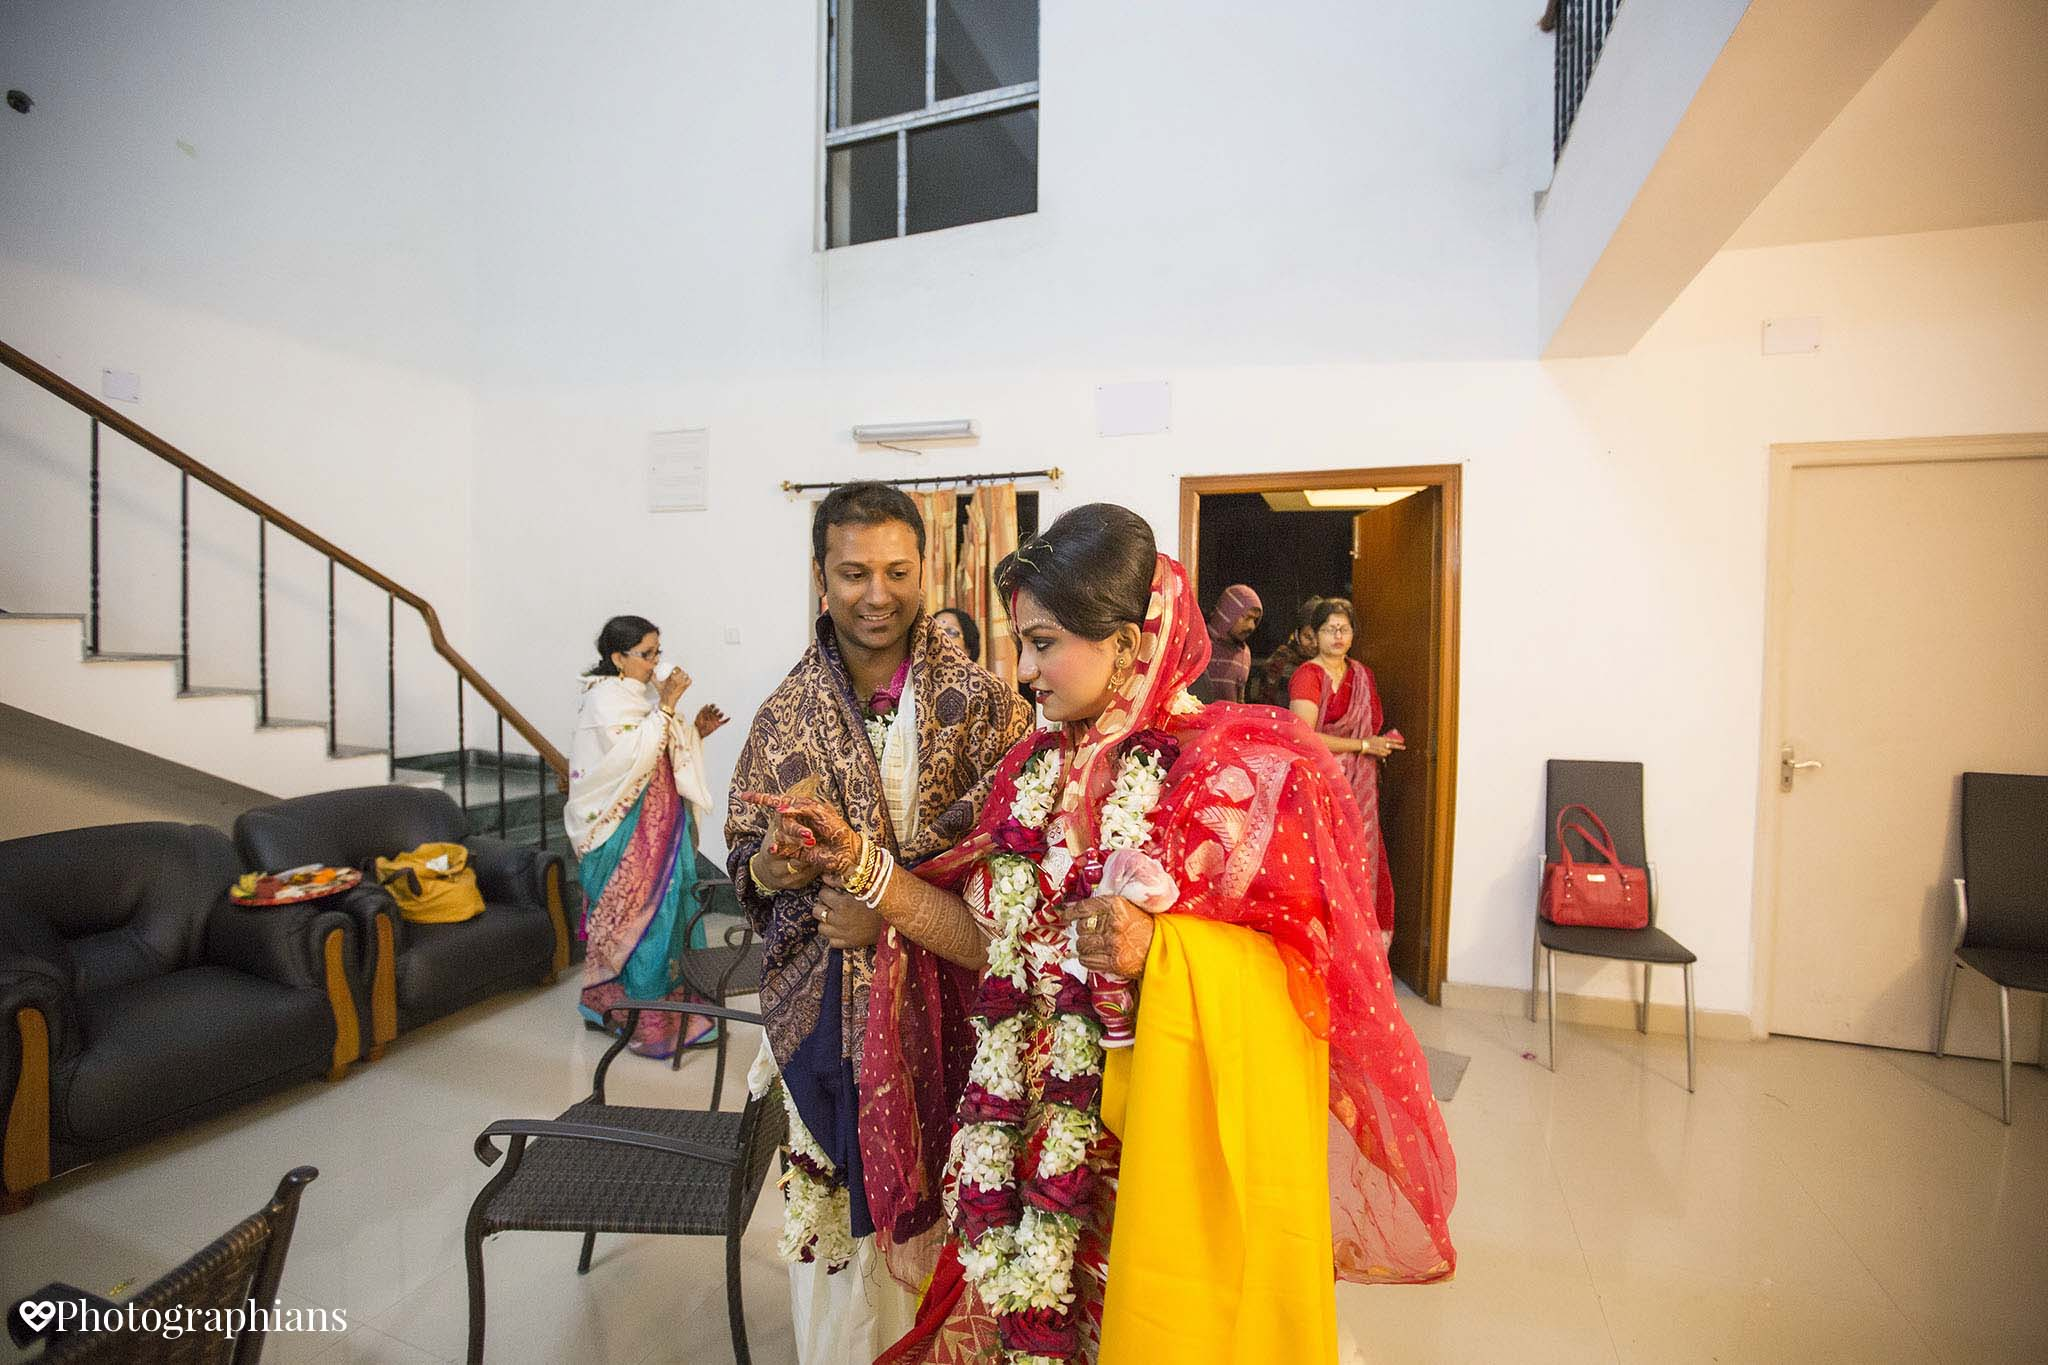 Photographians_Indian_Destination_Wedding_246